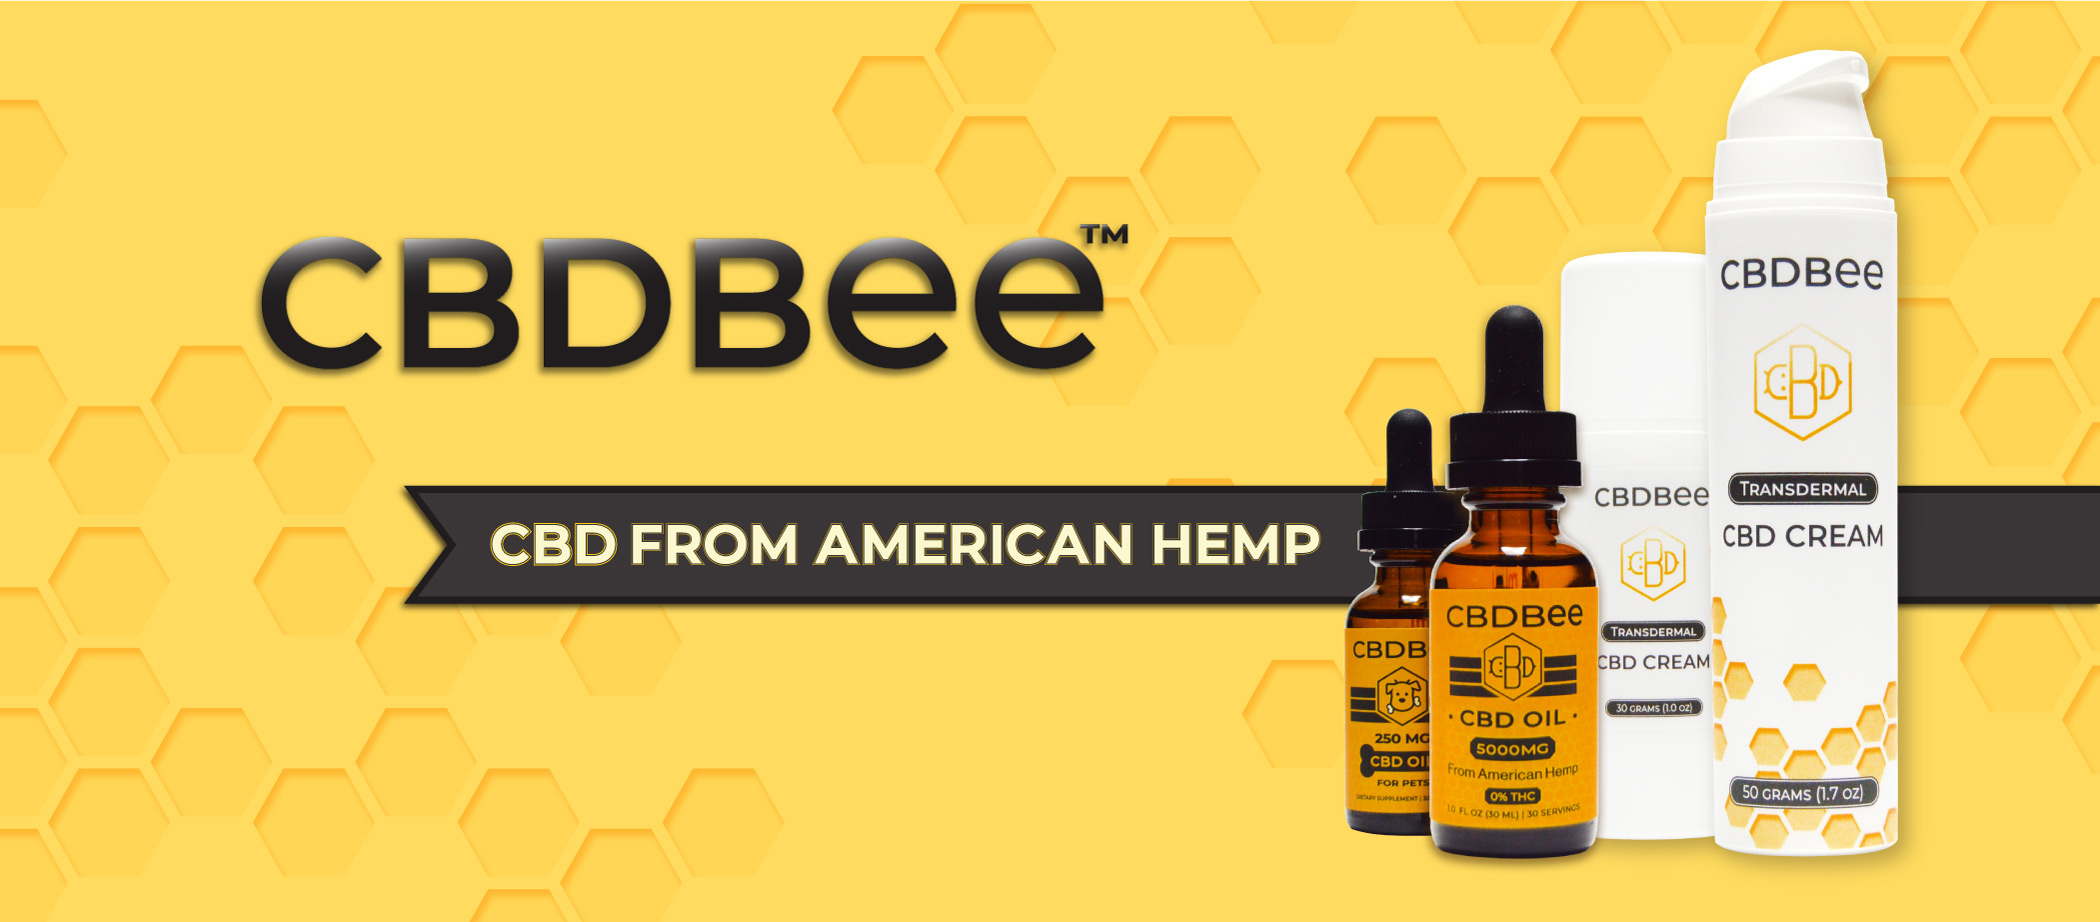 CBD Products Made With American Hemp